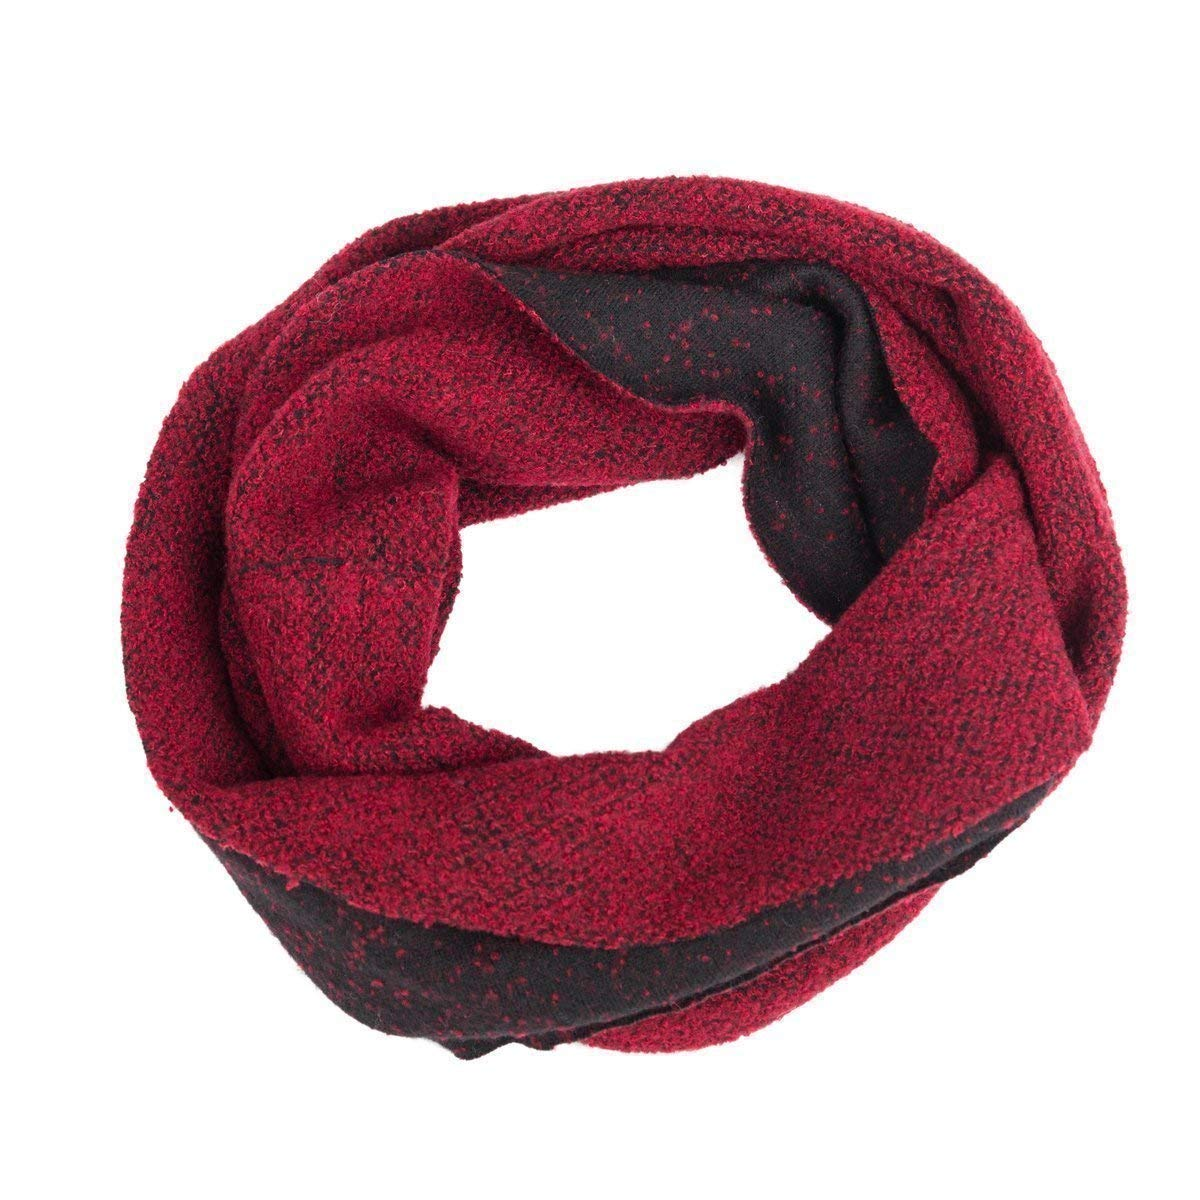 Soft Scarf, Circle Scarf, Head Scarf, Infinity Scarf, Loop, Snood, Hood, Neck, Reversible, Women, Men, Girl, Guys, Unisex, Wool, Red, Black, Charcoal, One size, Italian Style, Handmade in Florence, Italy